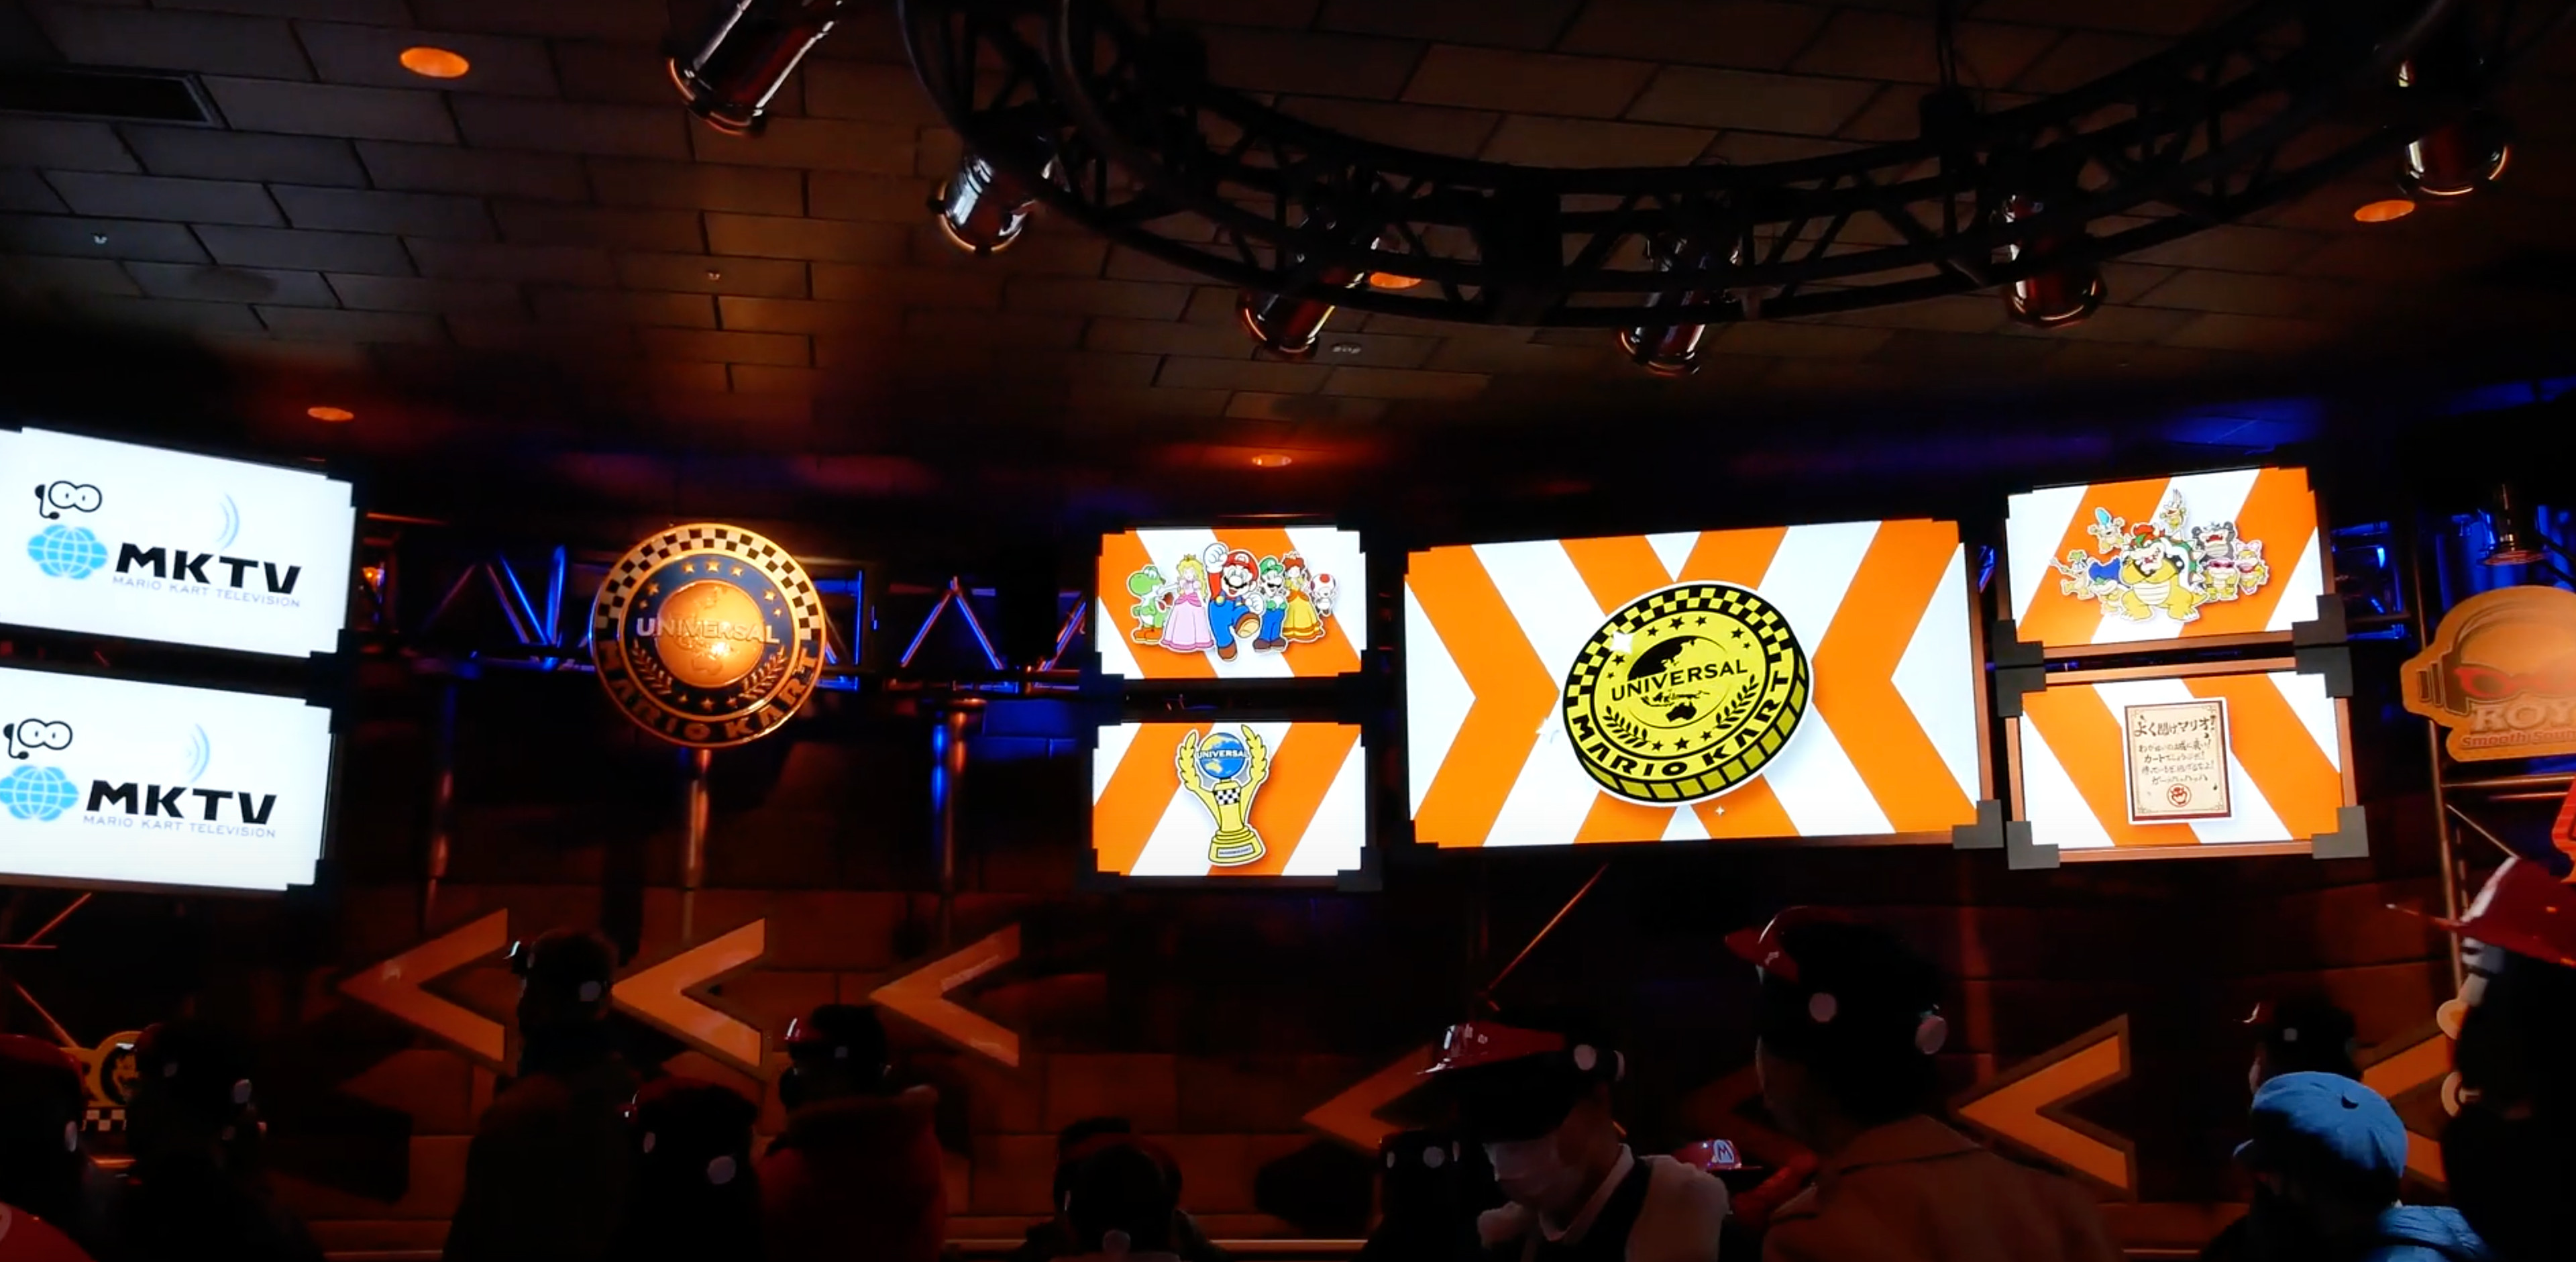 The Universal Medallion can be seen during pre show. Photo Credit: UniversalParksNewsToday